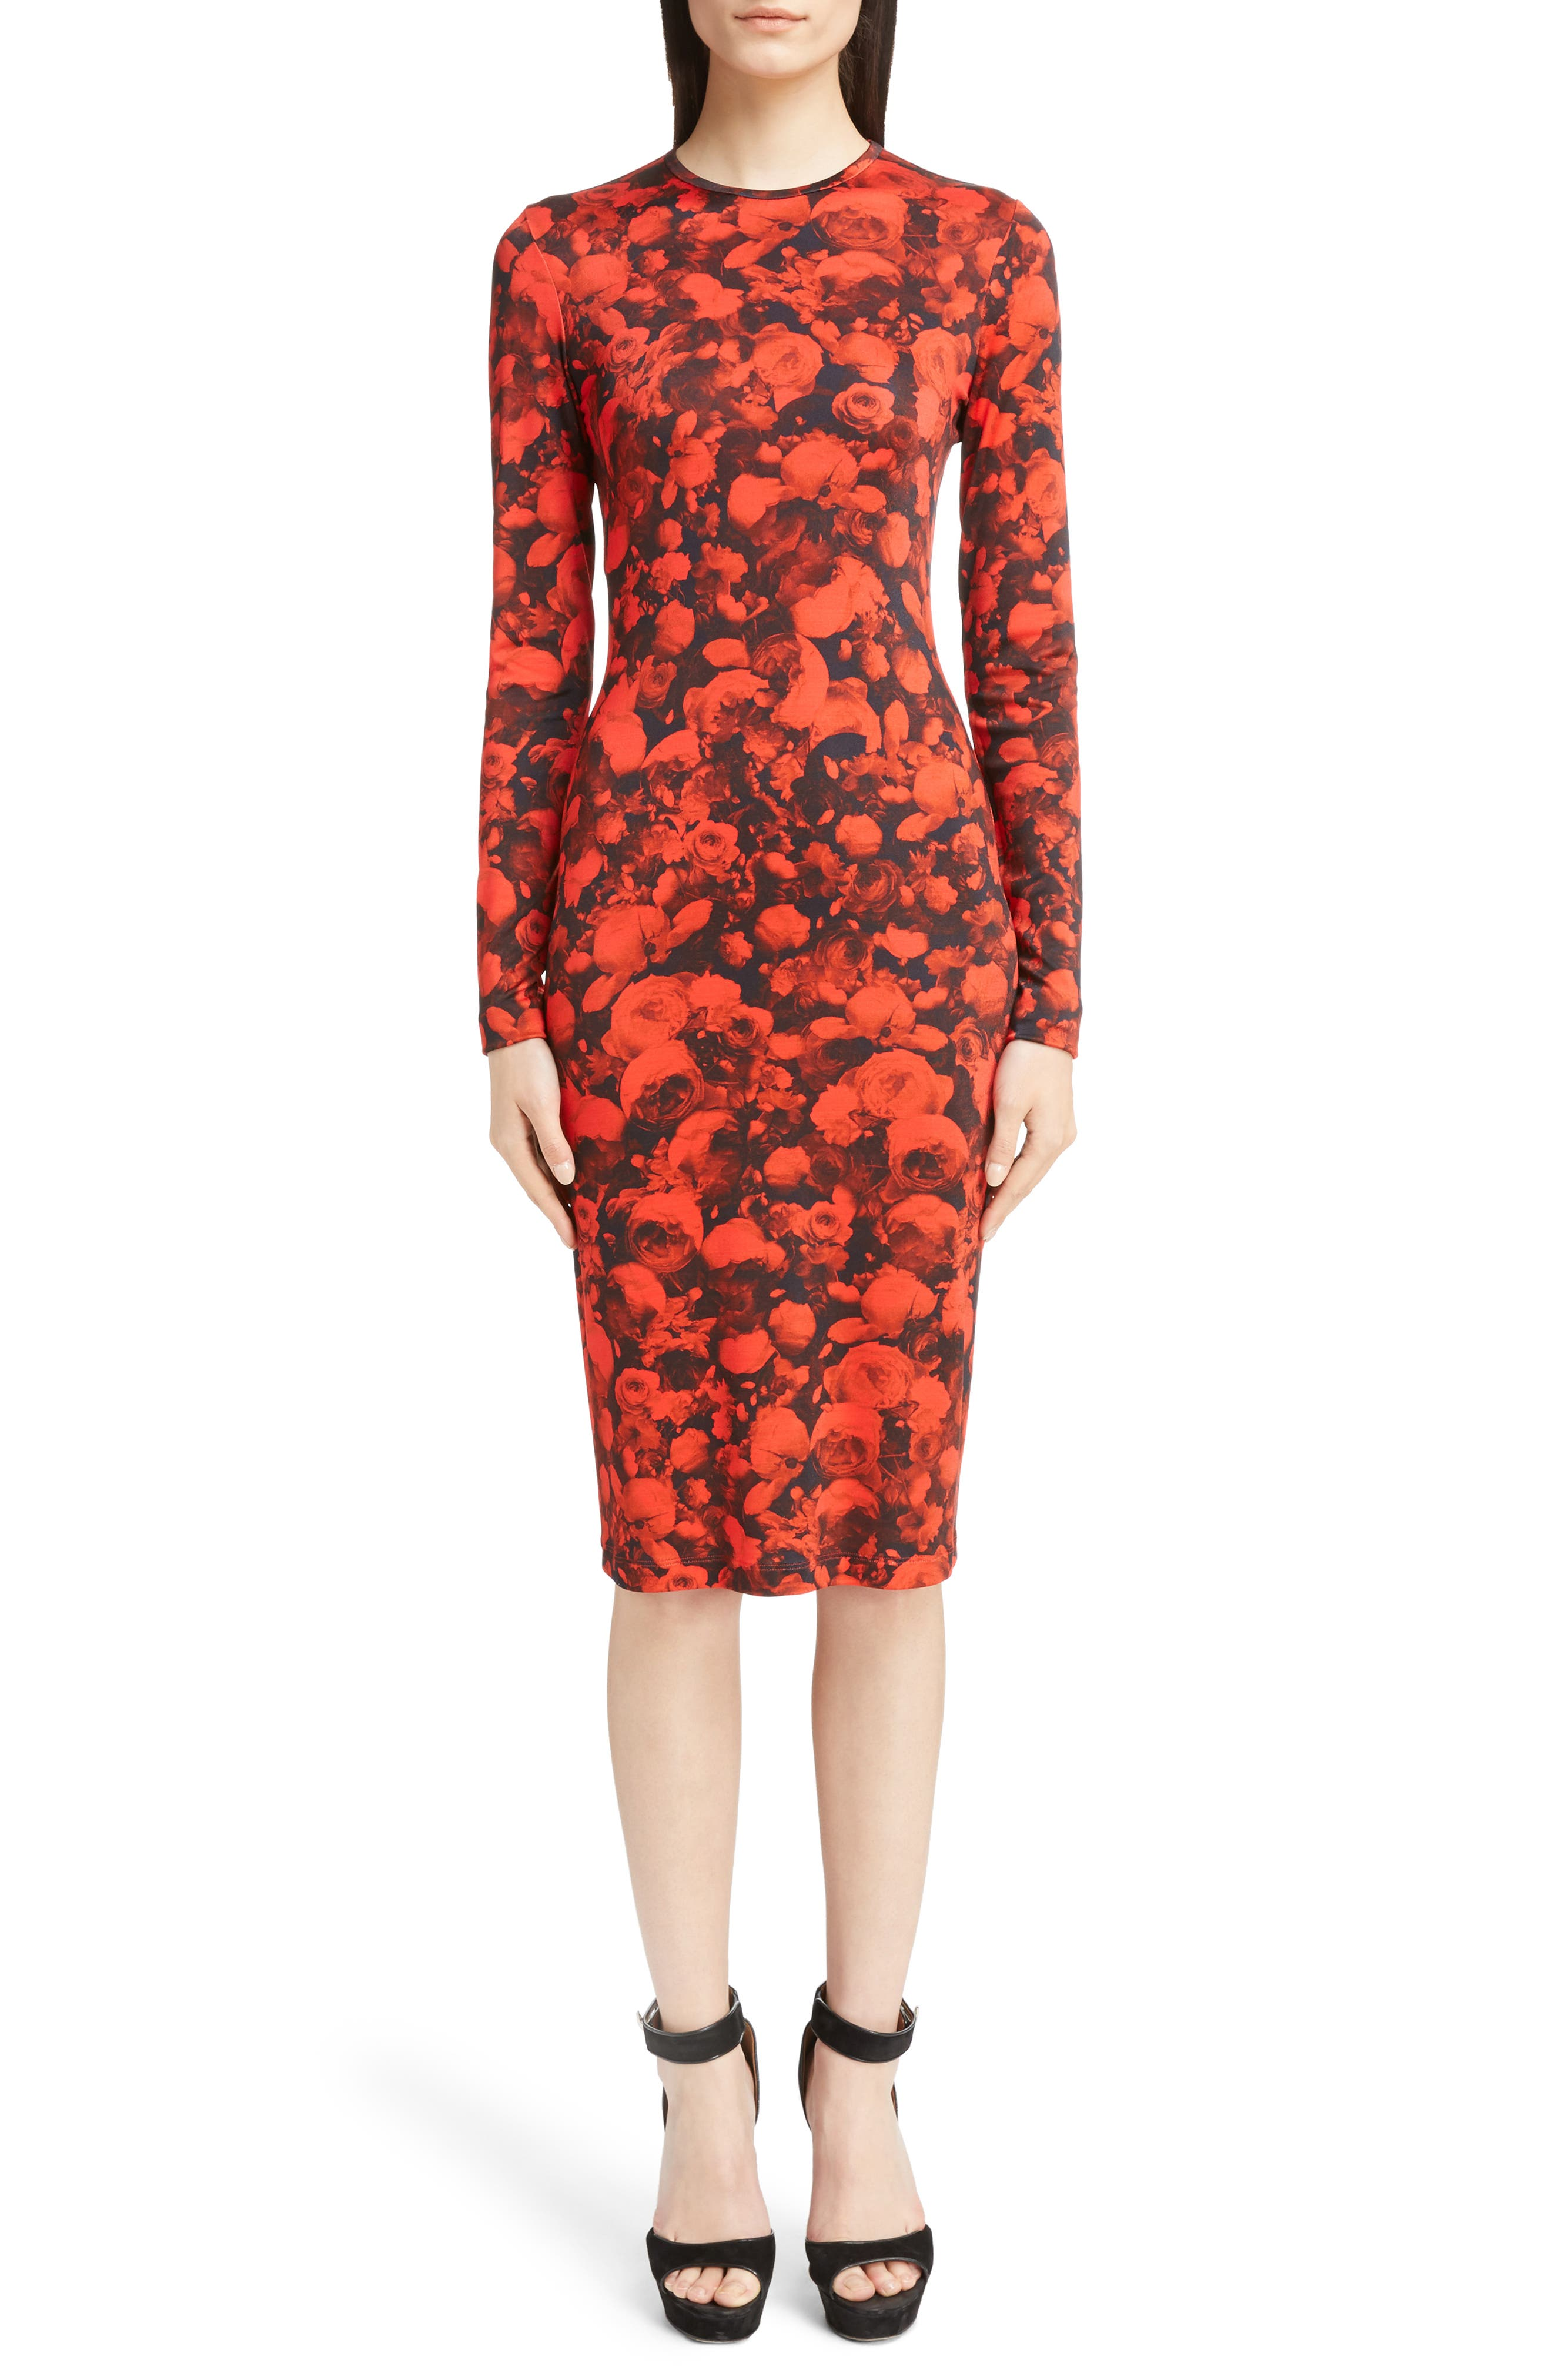 Givenchy Rose Print Jersey Dress